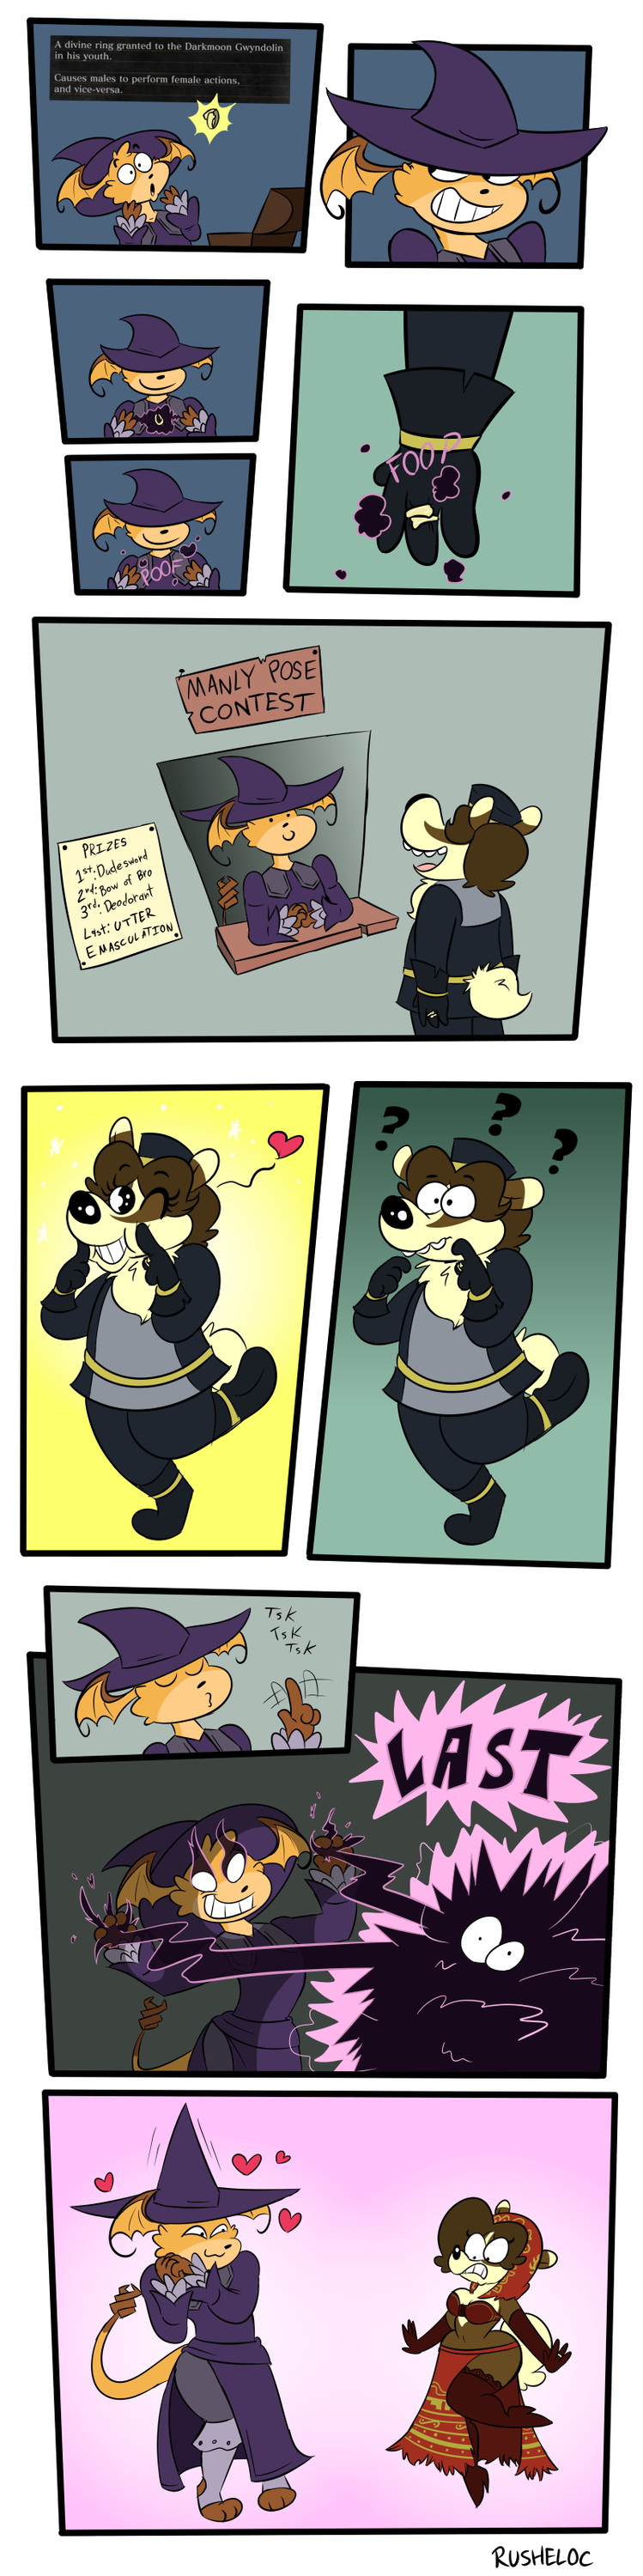 Quickie Comic - Ring Out